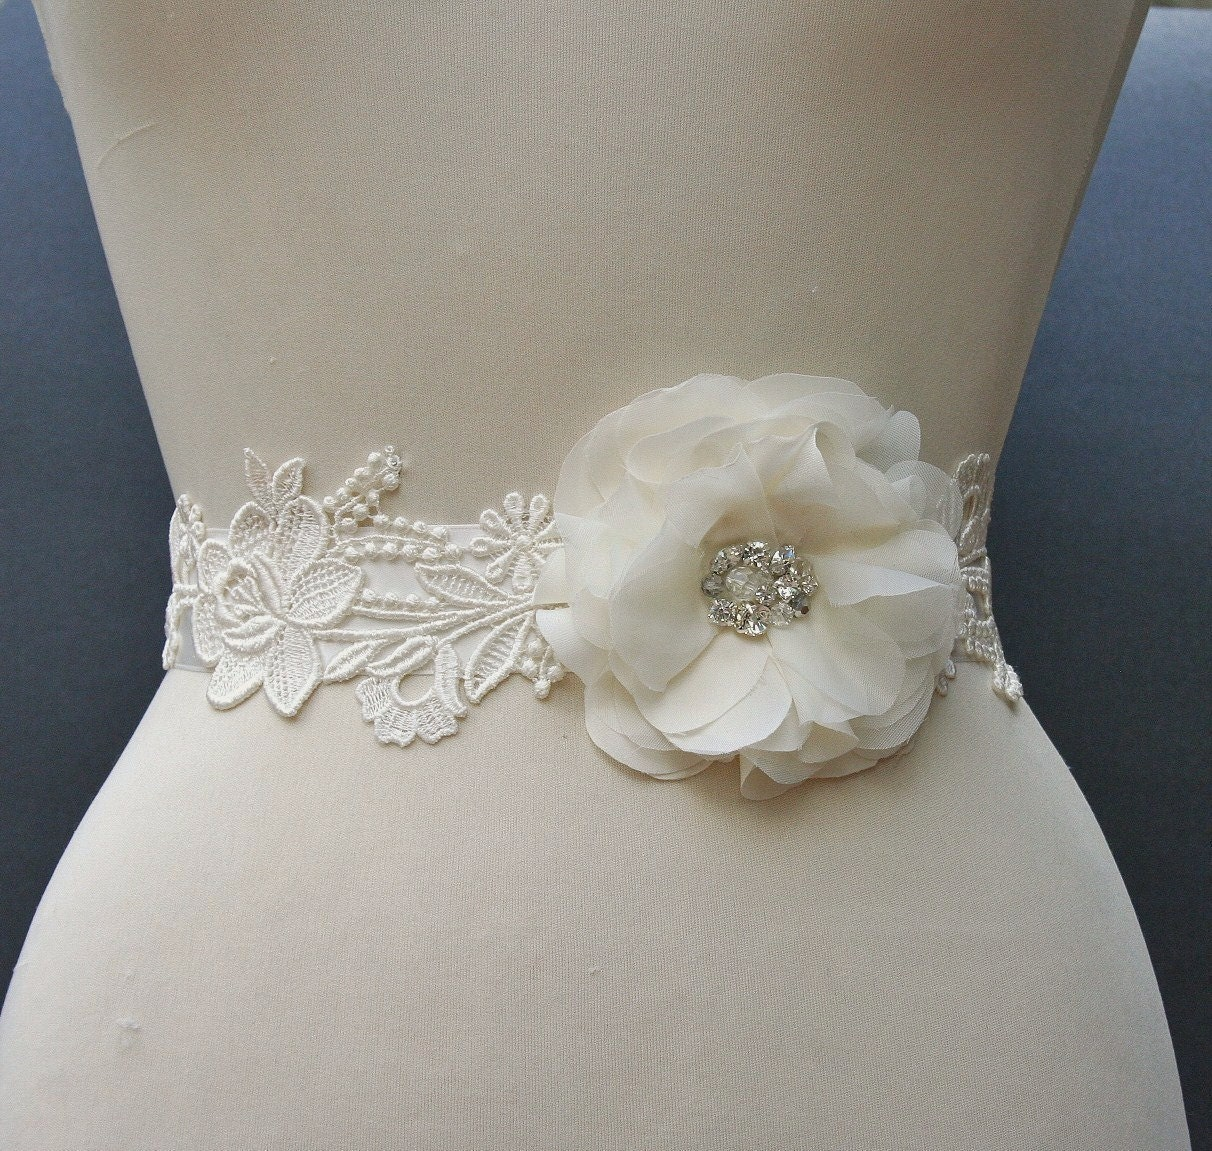 Ivory Bridal Sash, Wedding Belt, Satin Ribbon Bridal Sash, Beaded Flower Wedding Sash, Rhinestone Bridal Sash